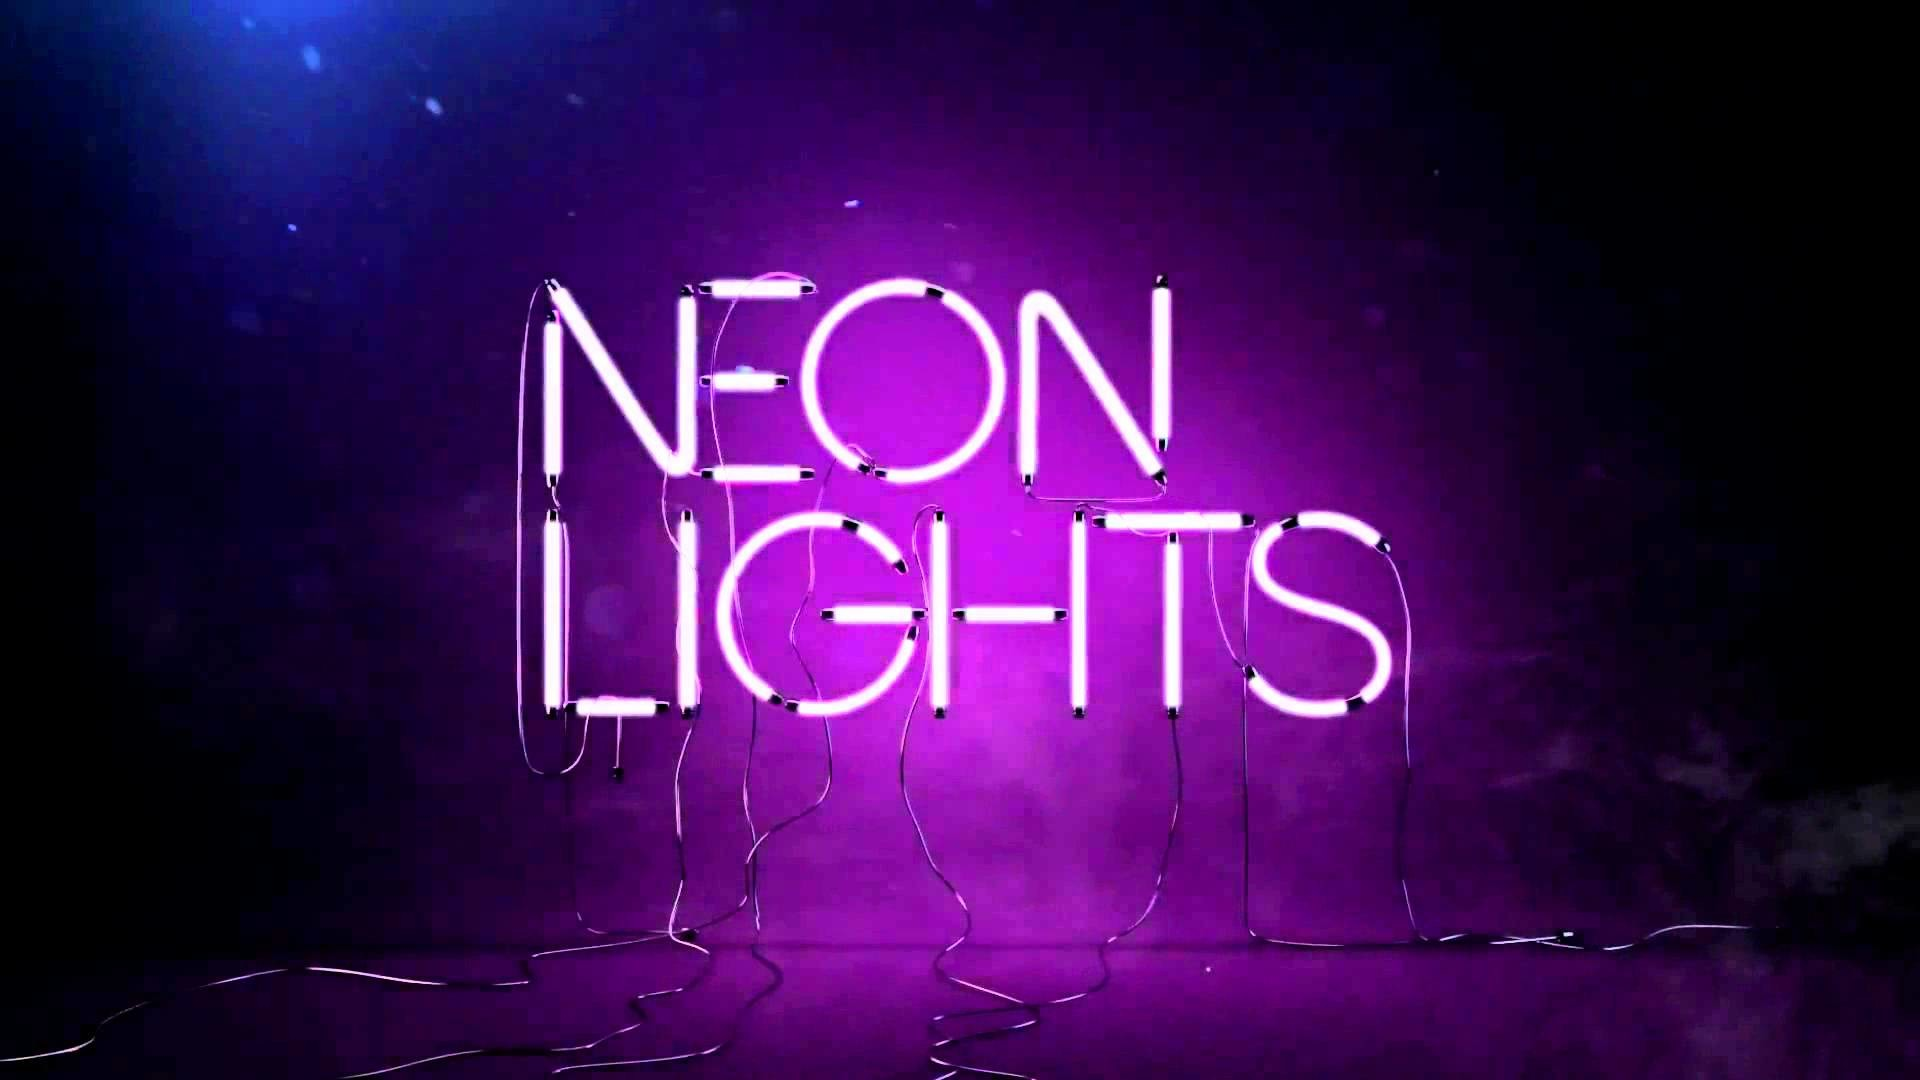 Neon Light Backgrounds 64 images